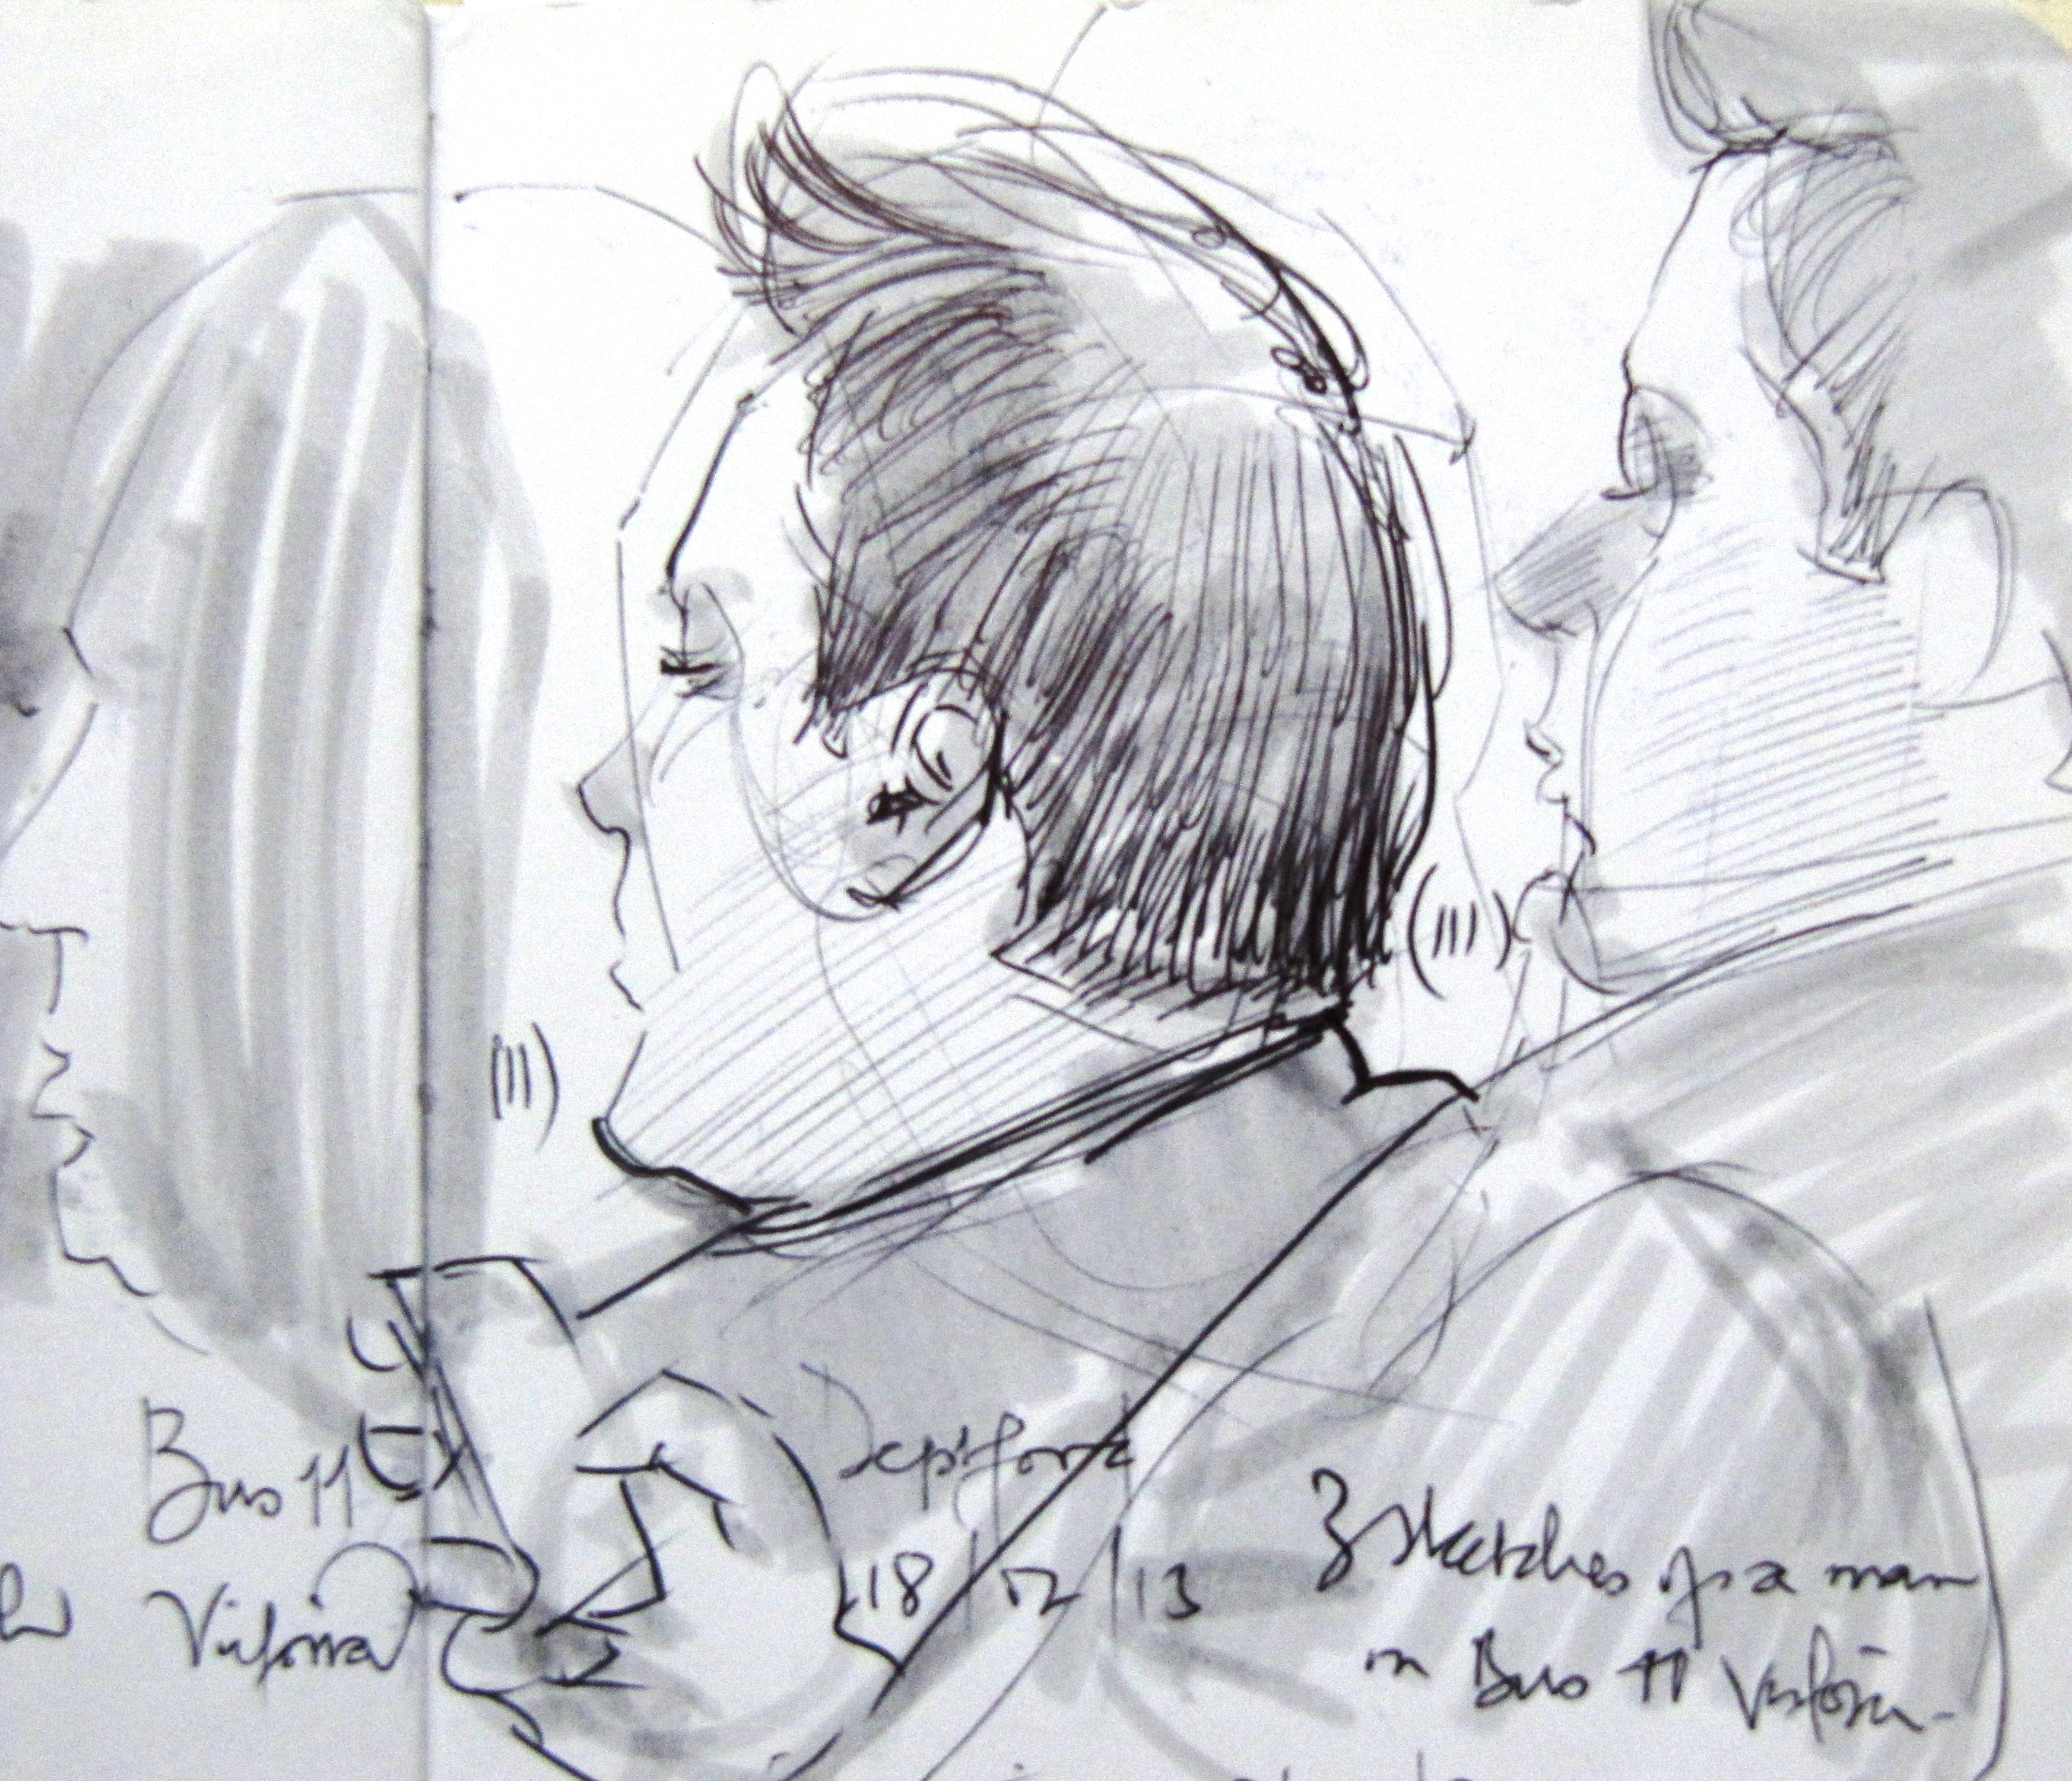 2 profile sketches of a man.